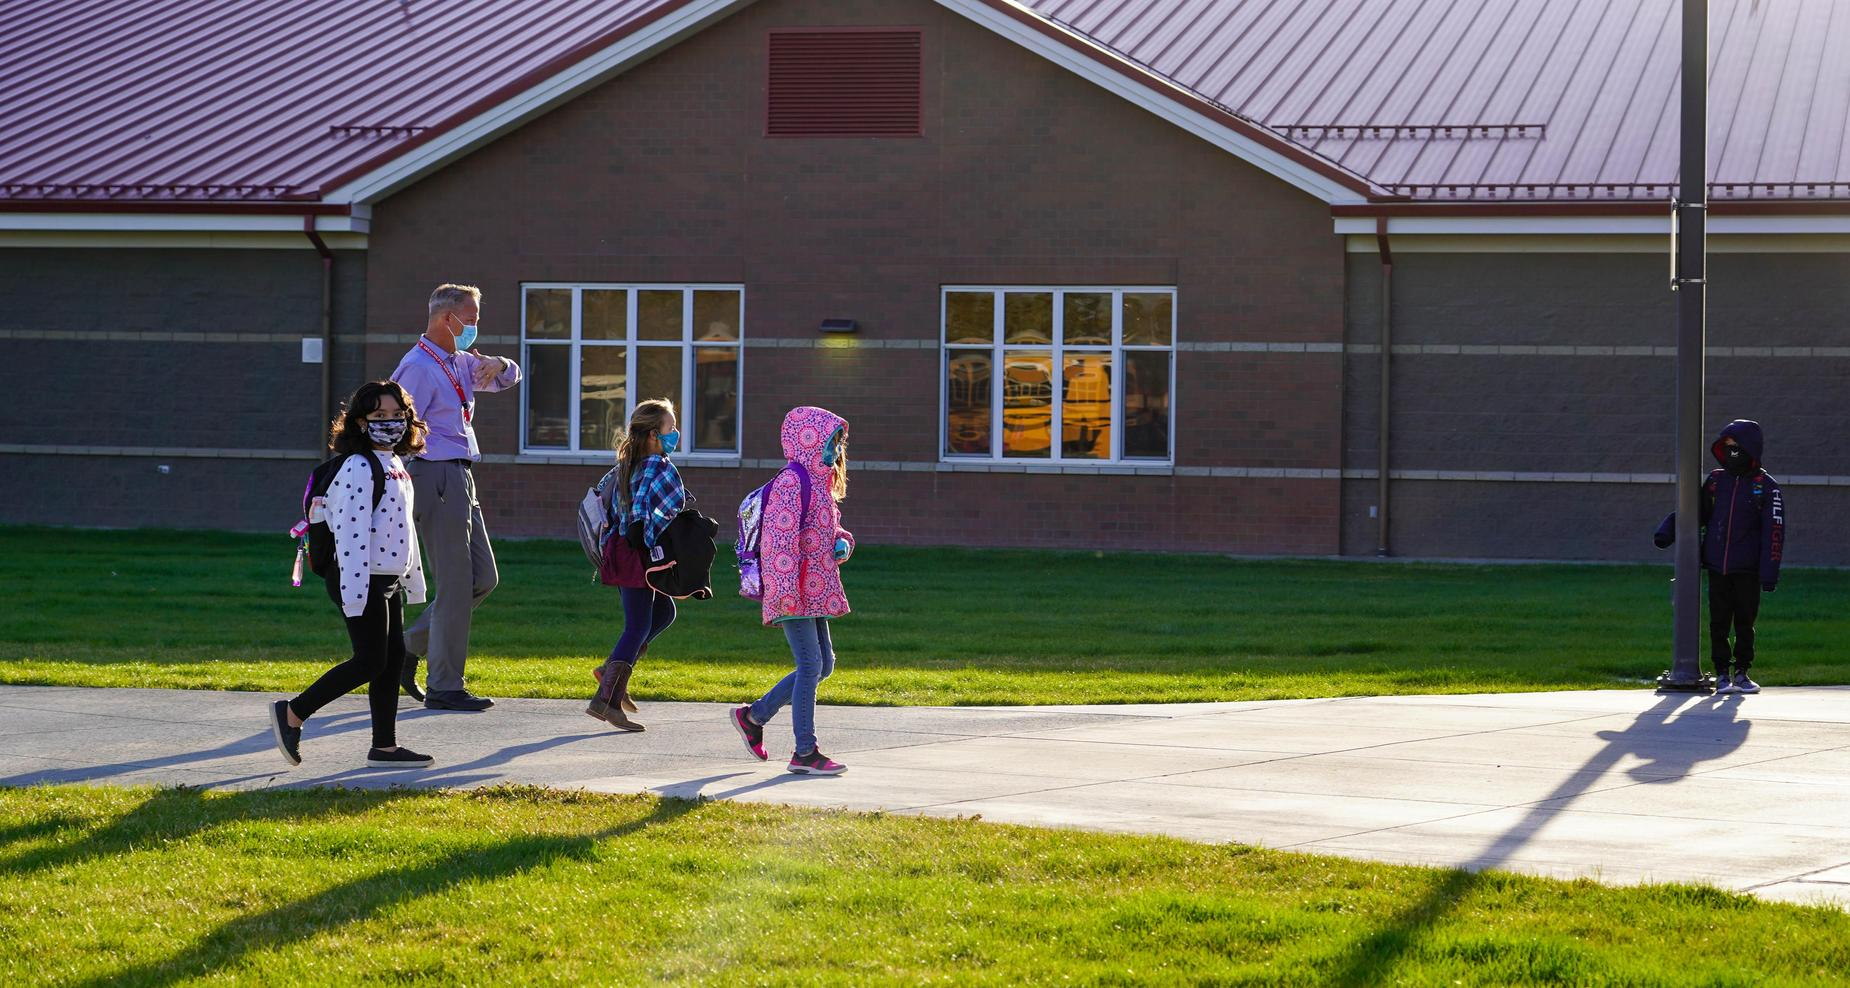 West Park principal walking with students.